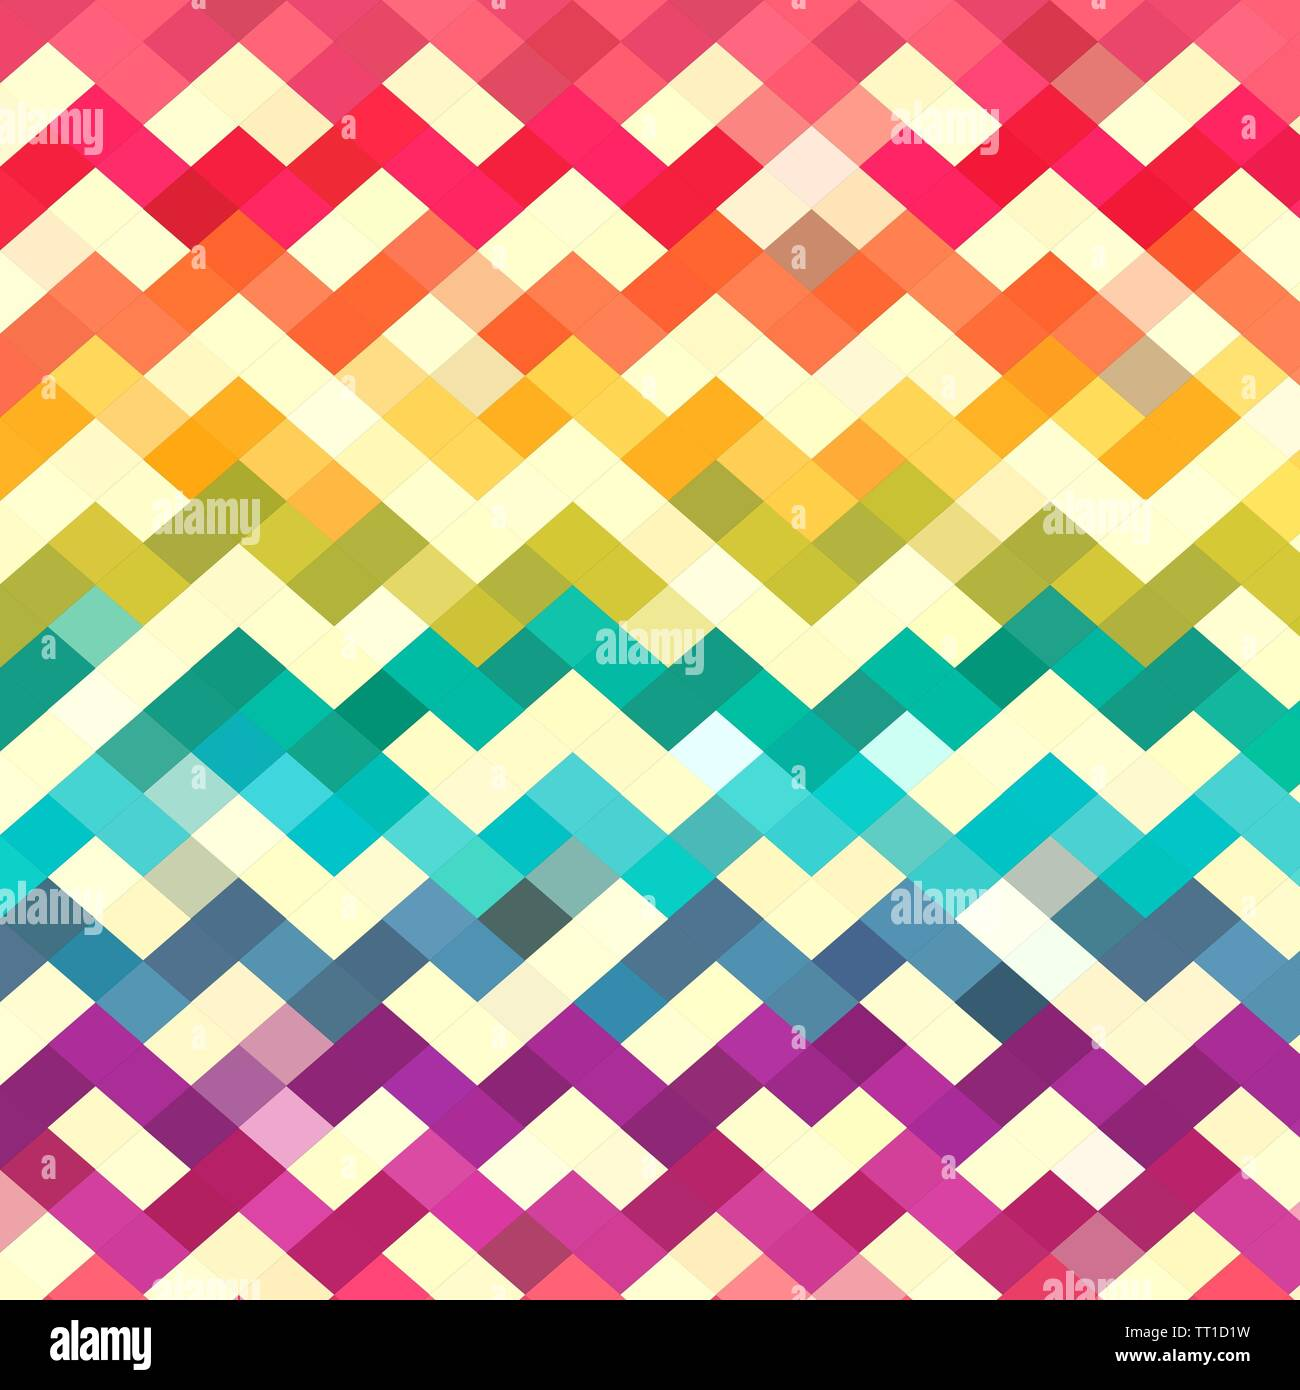 Isometric Minimal Abstract Cubes And Squares Colorful Backgrounds Textures Patterns Stock Photo Alamy